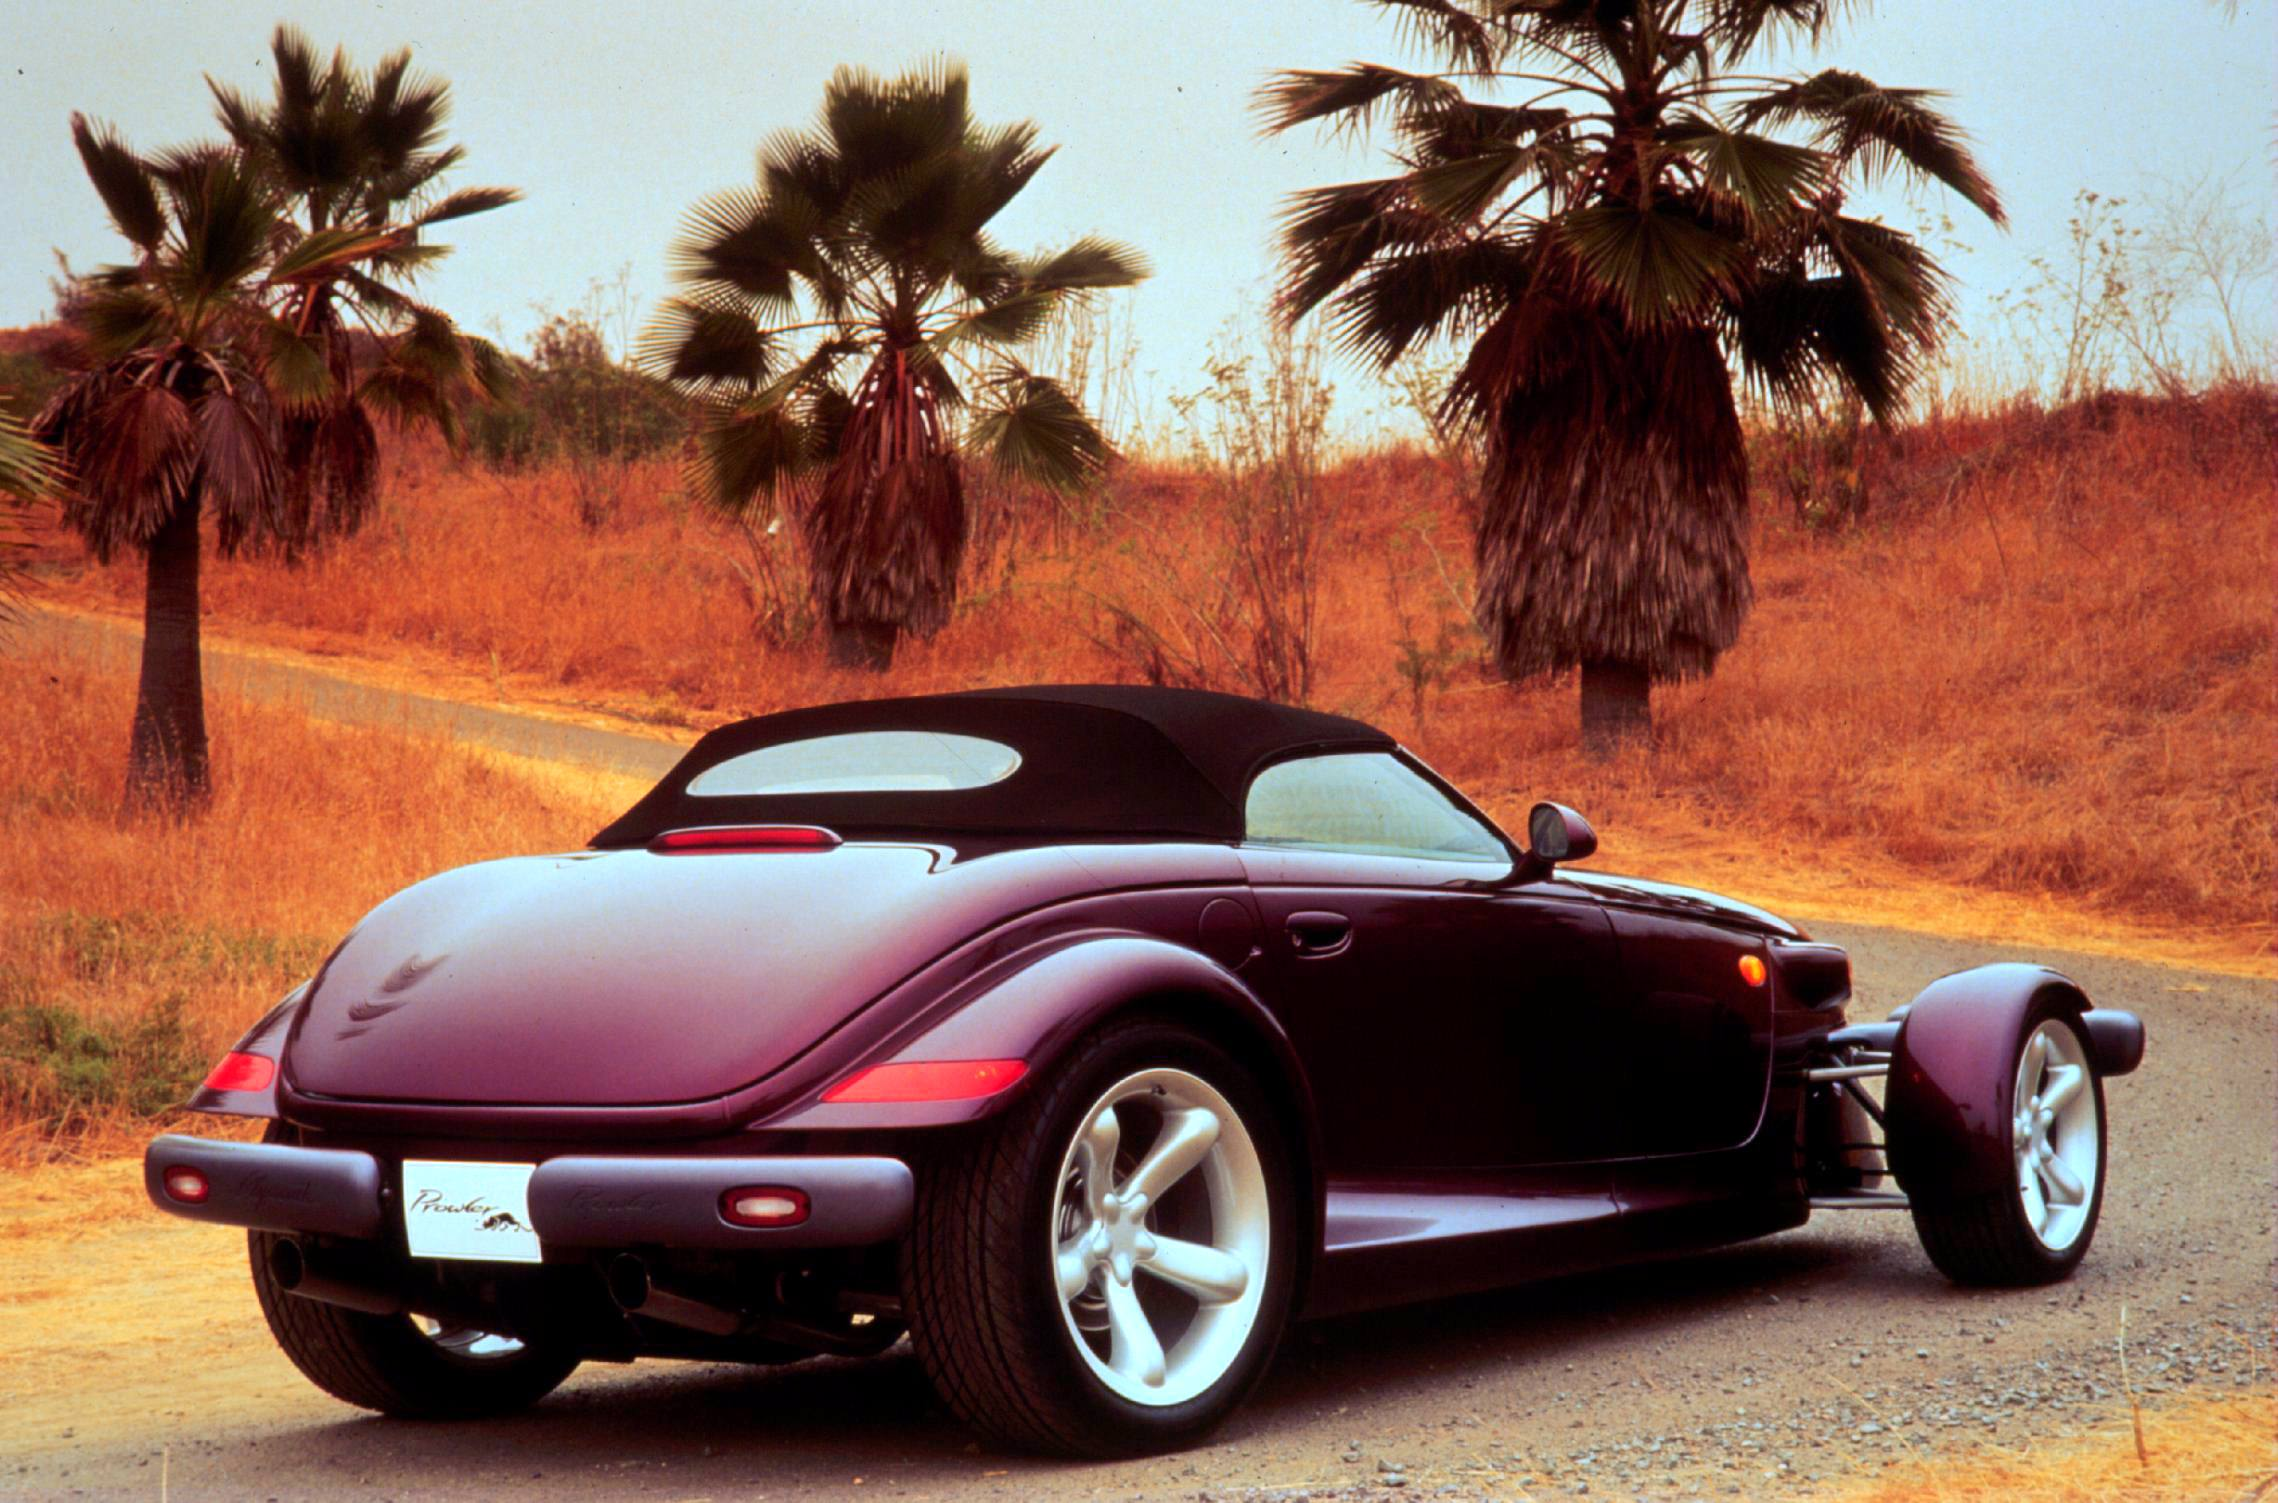 Plymouth Prowler rear 3/4